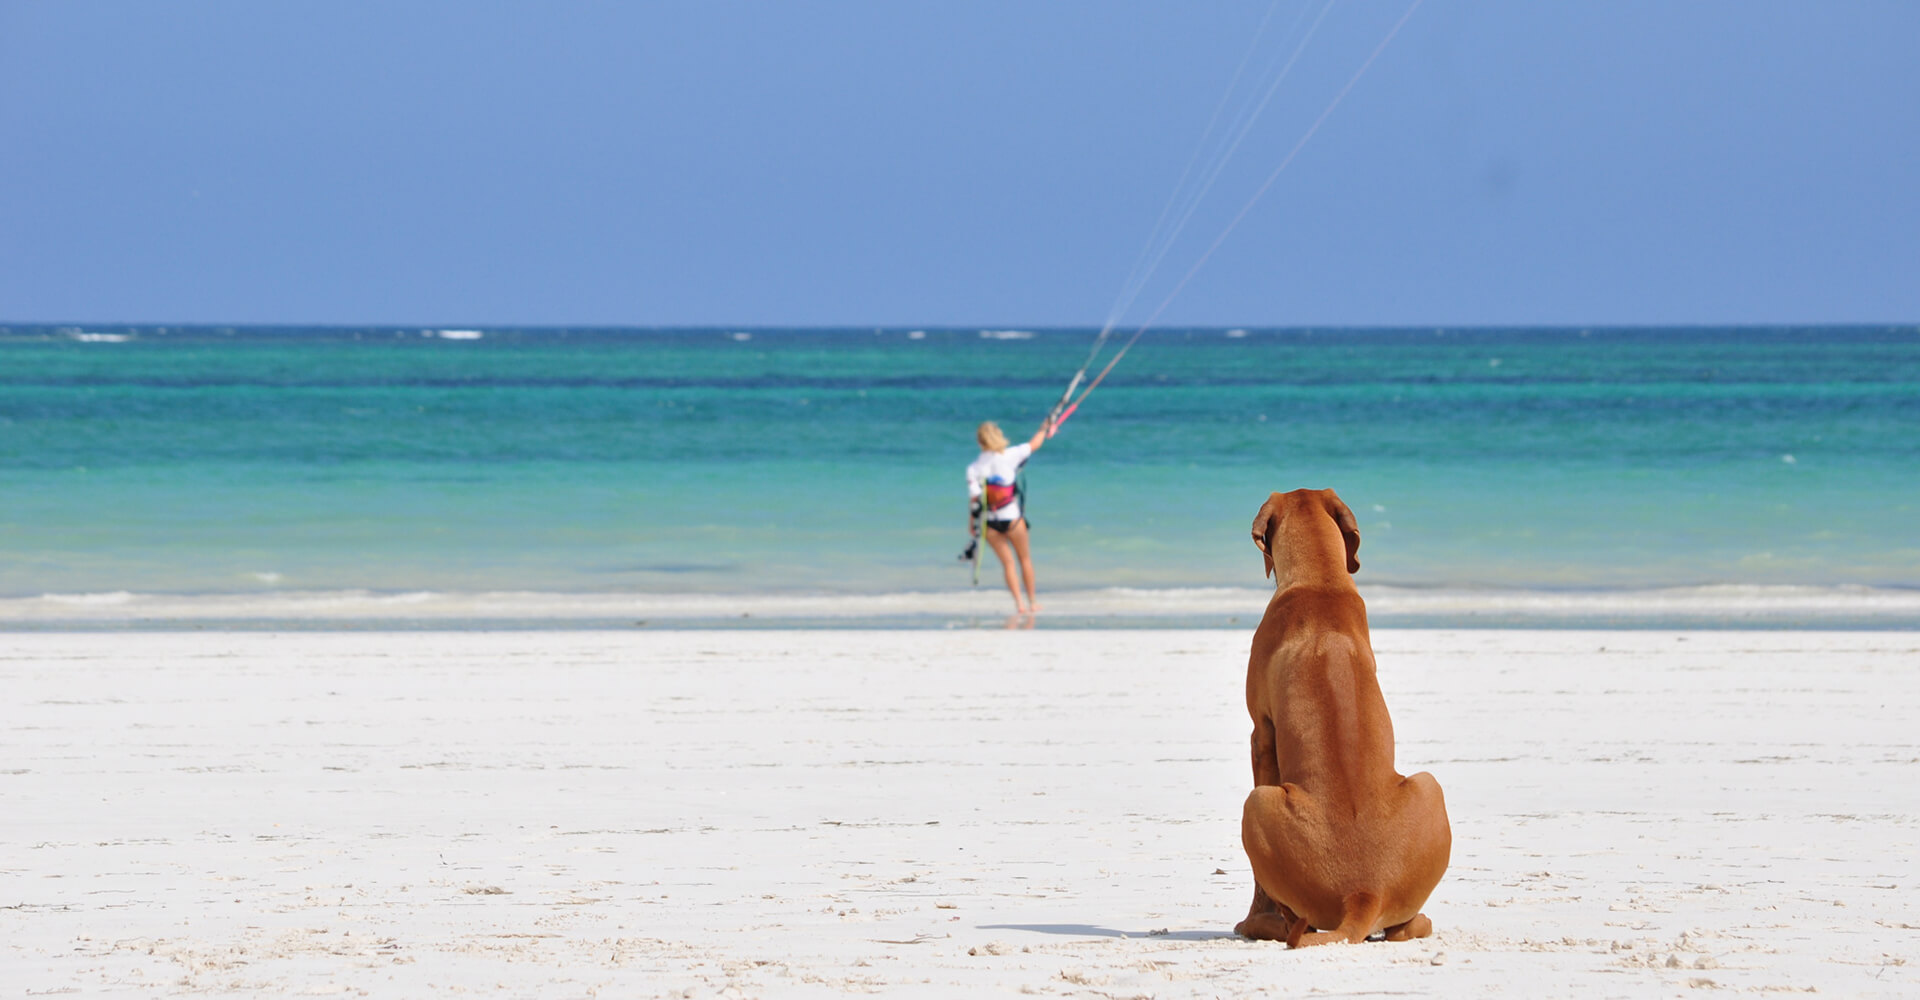 watchdog-kiting-galu-beach-kenya-coast.jpg